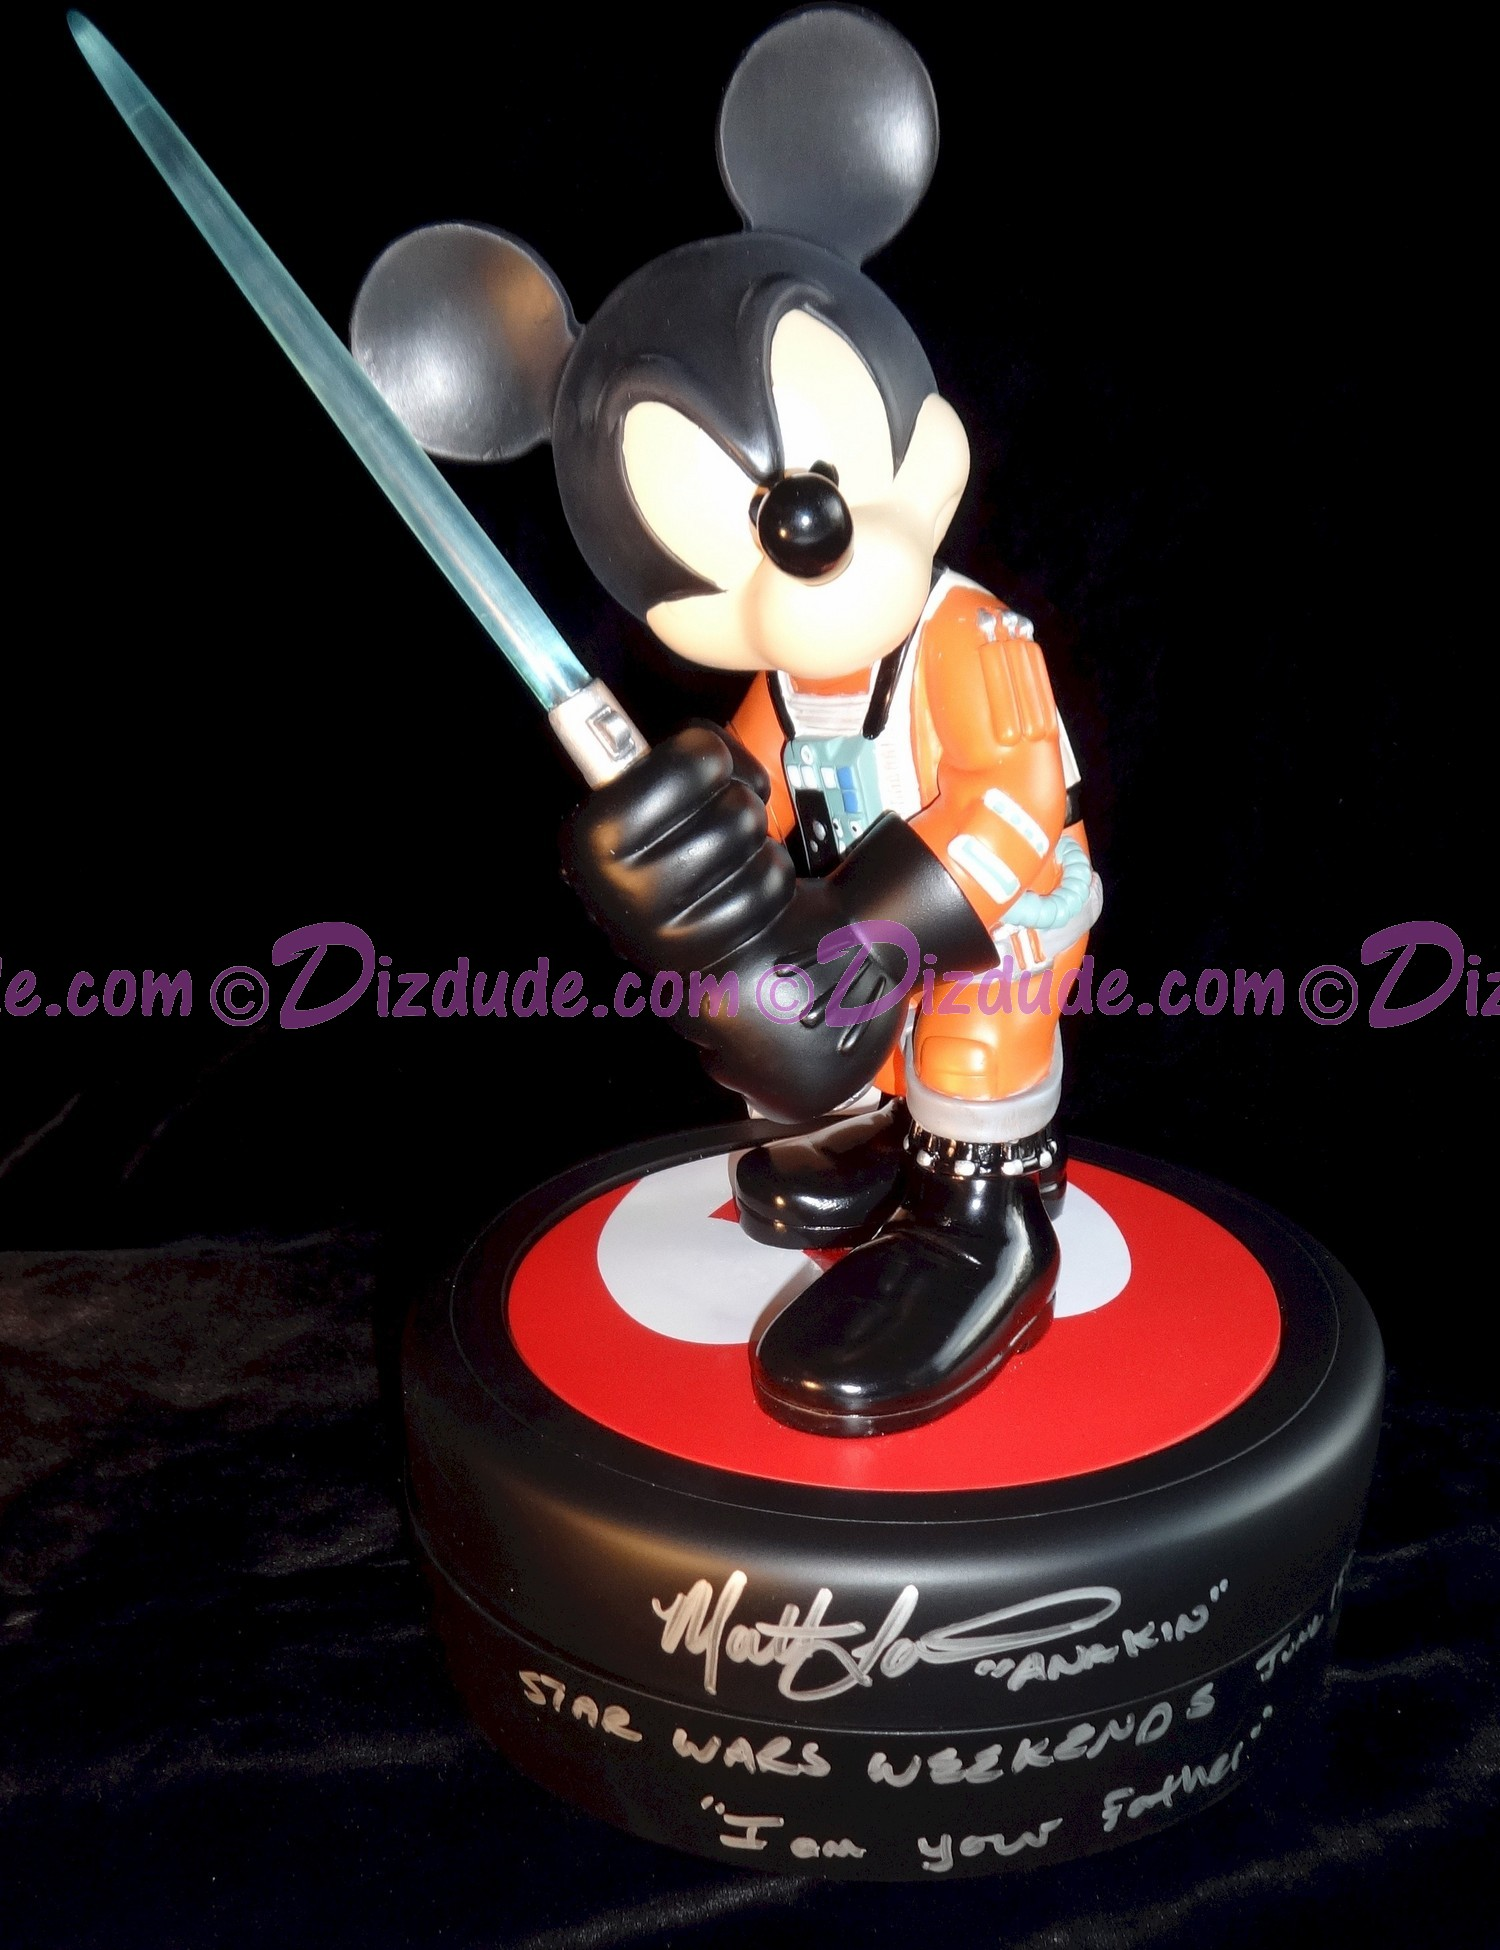 Mickey Mouse as Jedi Mickey X-Wing Pilot Signed by Matt Lanter - With Pin of LE 1977 & Signed by Costa Alavezos